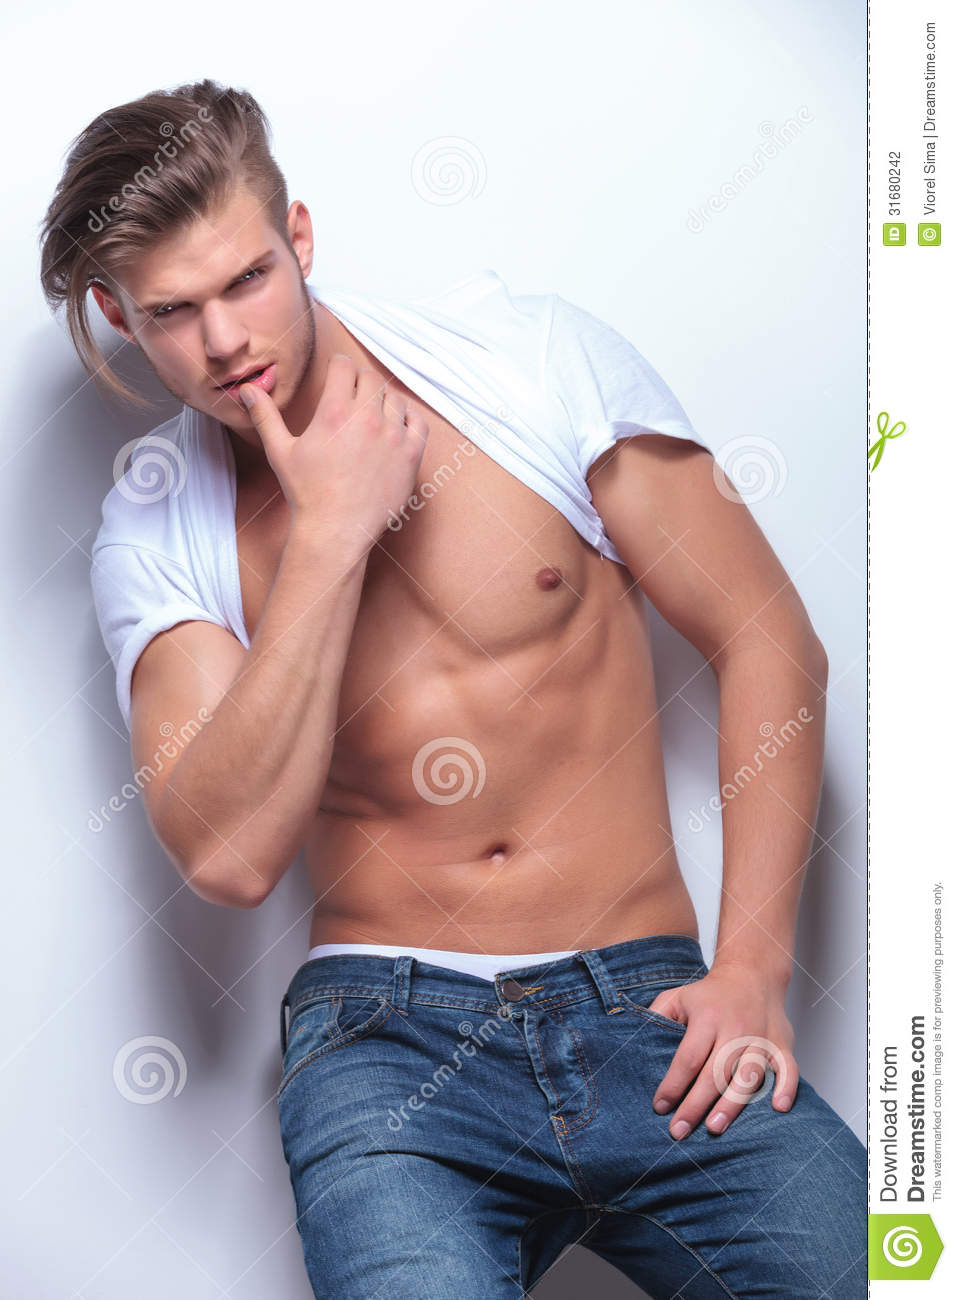 fashion-man-touches-his-lip-young-t-shirt-pulled-over-neck-revealing-big-musculature-touching-lower-thumb-light-31680242.jpg